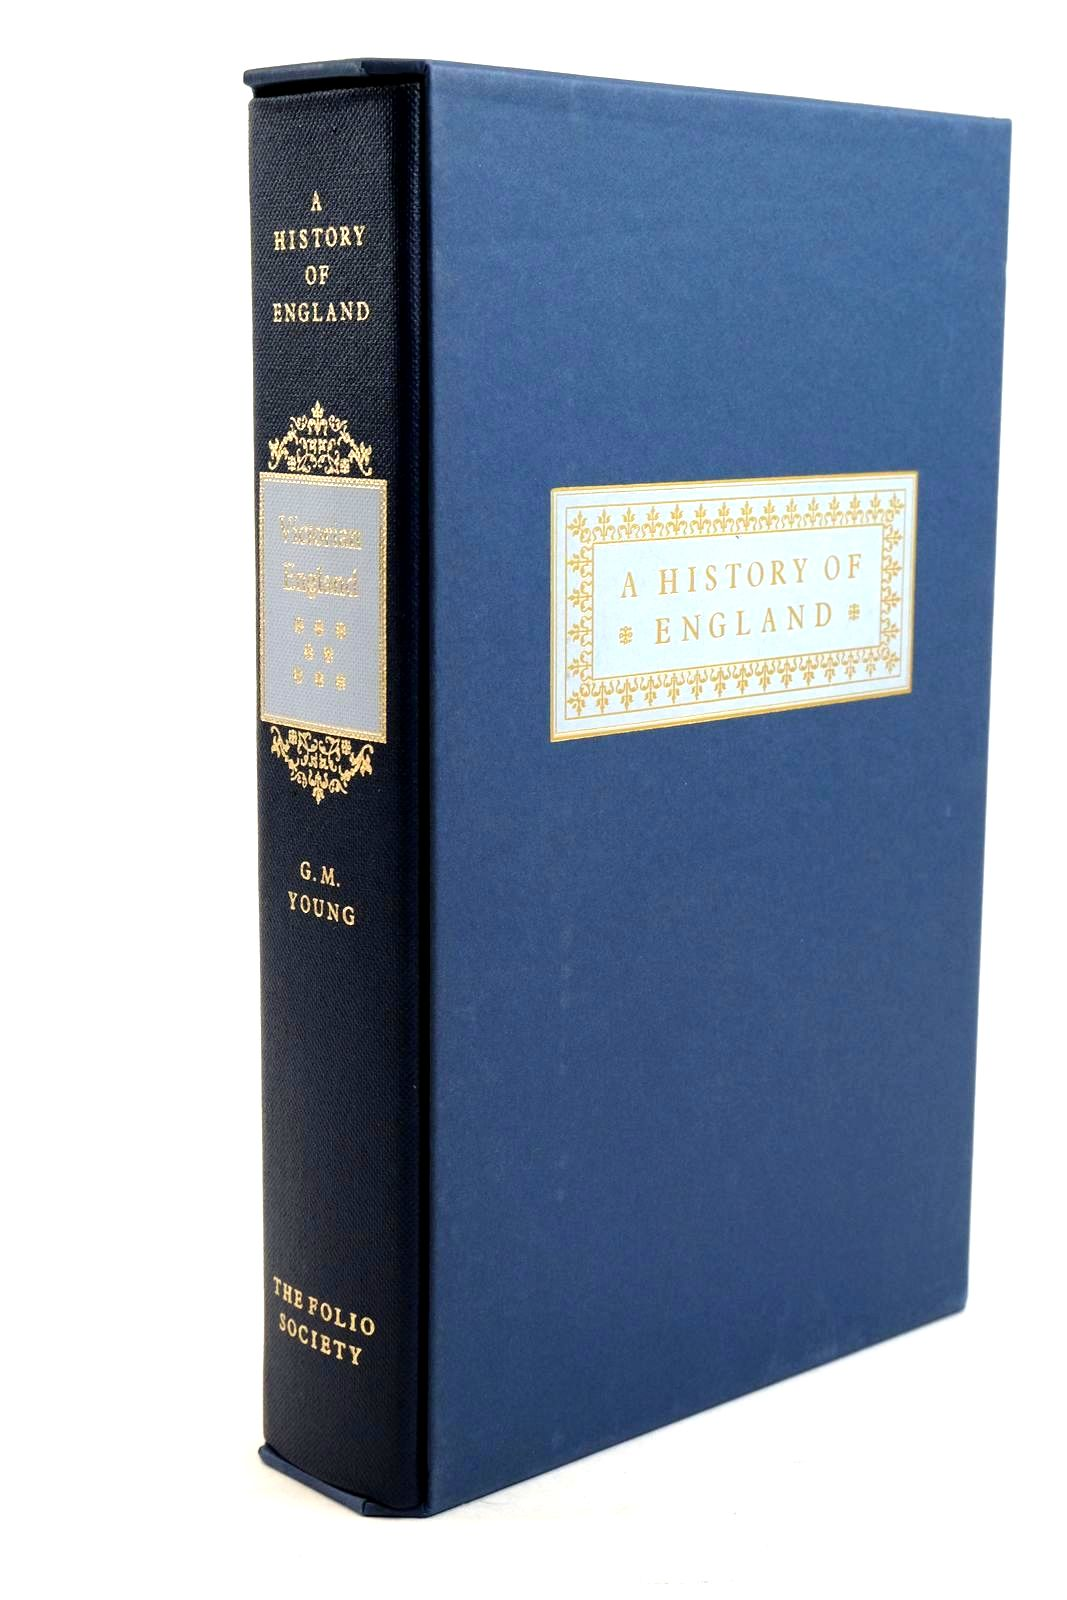 Photo of VICTORIAN ENGLAND written by Young, G.M. published by Folio Society (STOCK CODE: 1320779)  for sale by Stella & Rose's Books